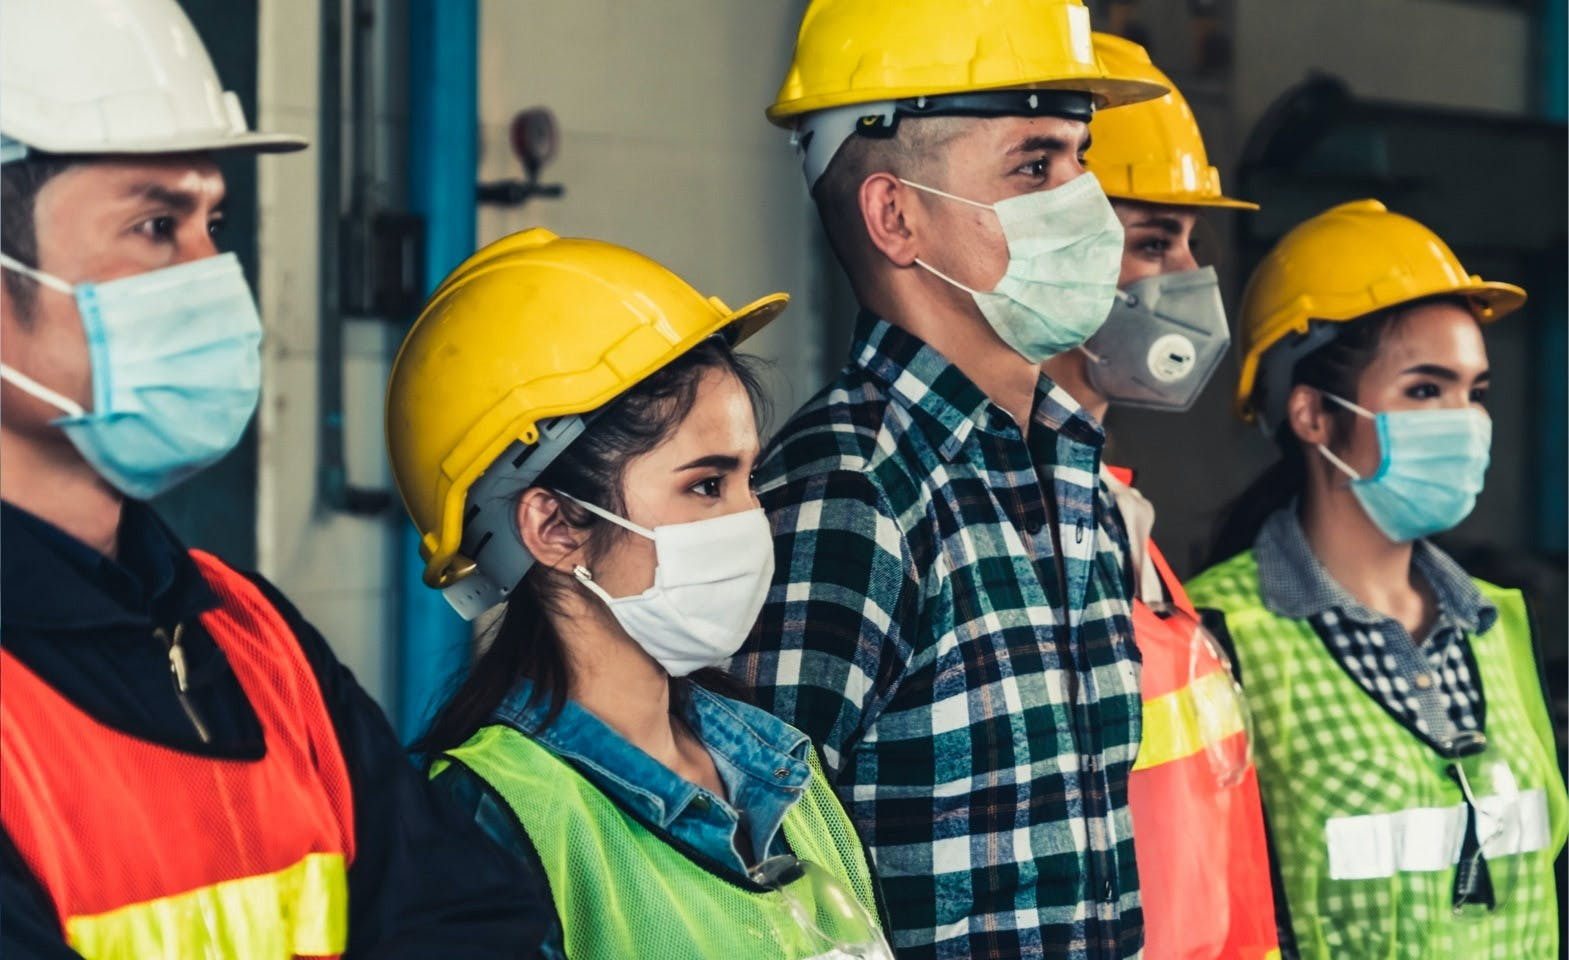 Constructions workers wearing masks